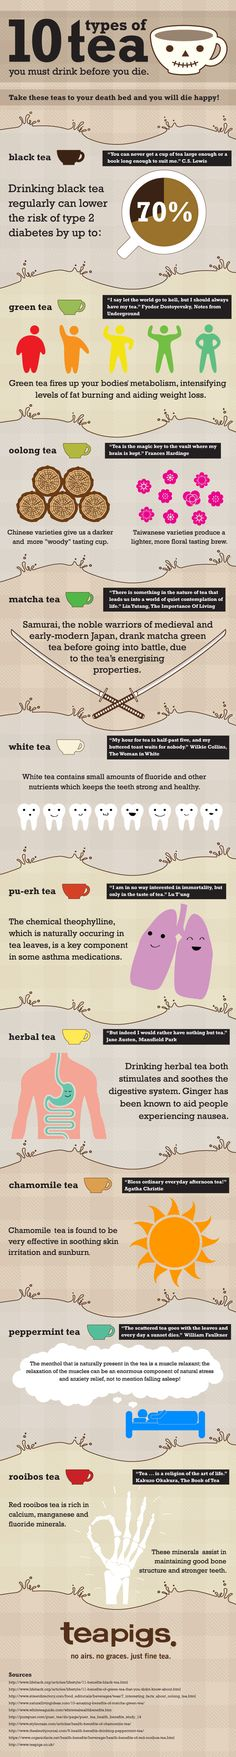 10 #Teas You Must Drink Before You Die - Do you fancy an infographic? There are a lot of them online, but if you want your own please visit http://www.linfografico.com/prezzi/ Online girano molte infografiche, se ne vuoi realizzare una tutta tua visita http://www.linfografico.com/prezzi/